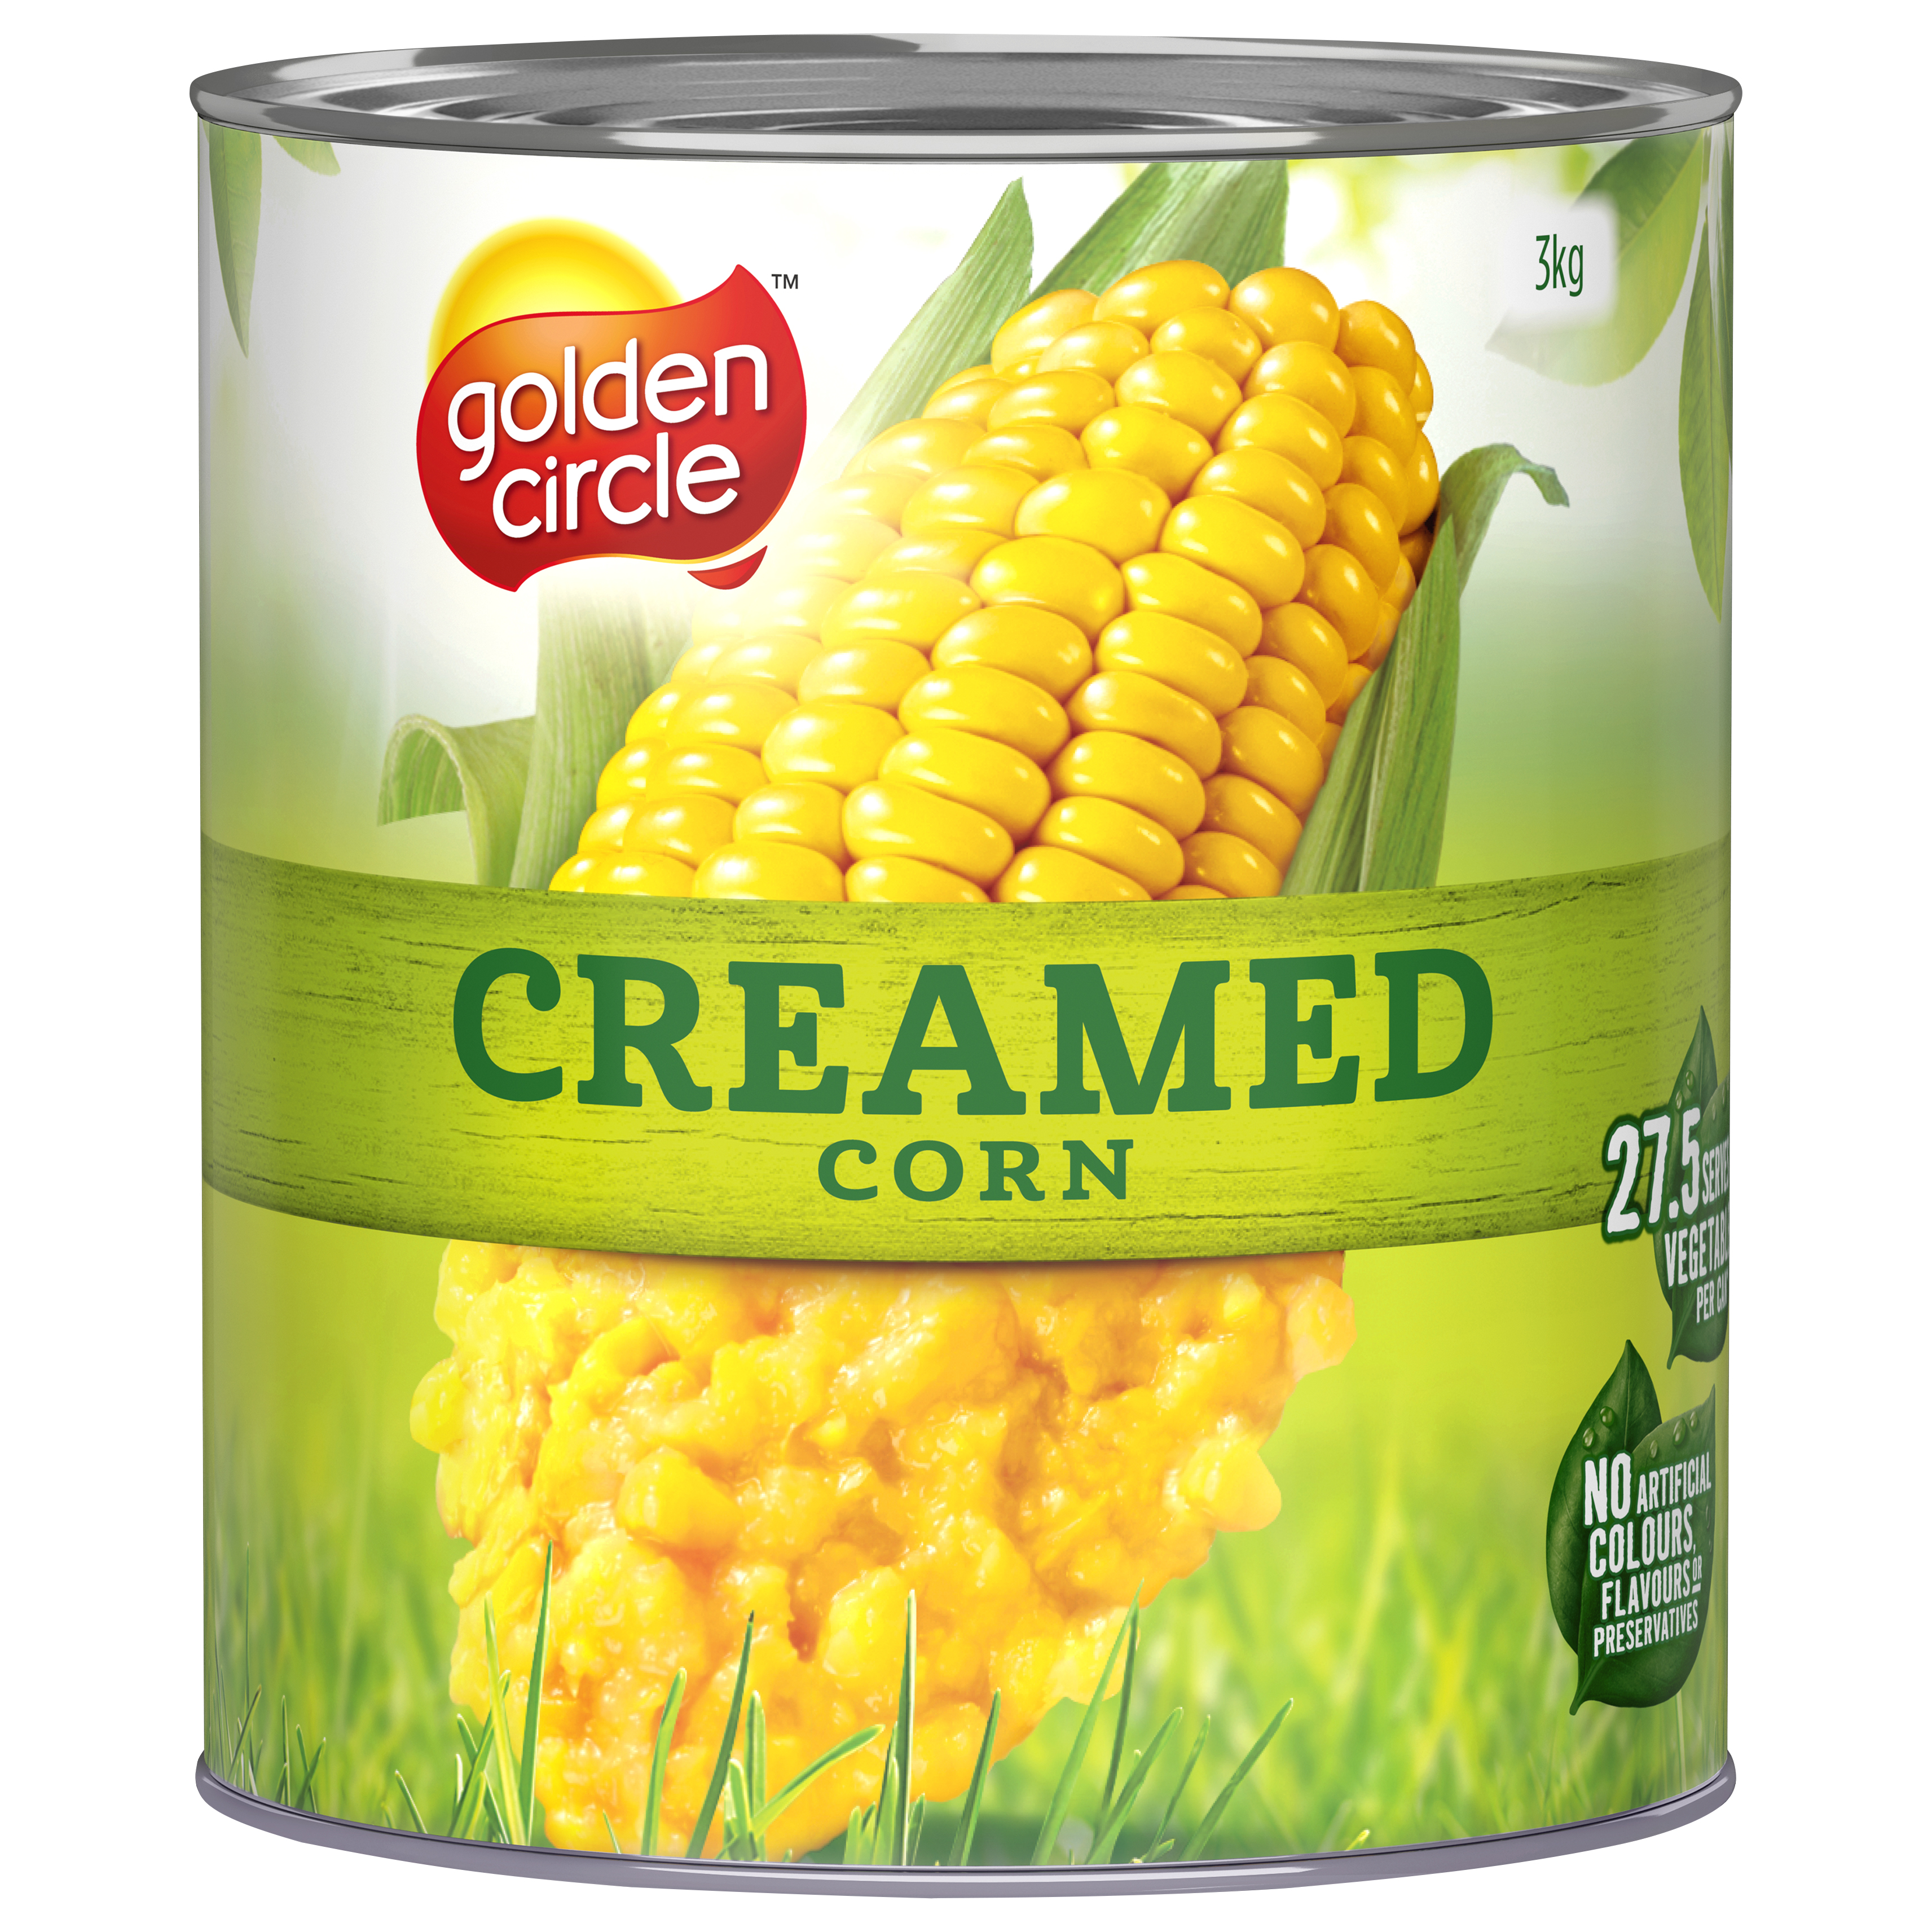 Golden Circle Creamed Corn 3kg image